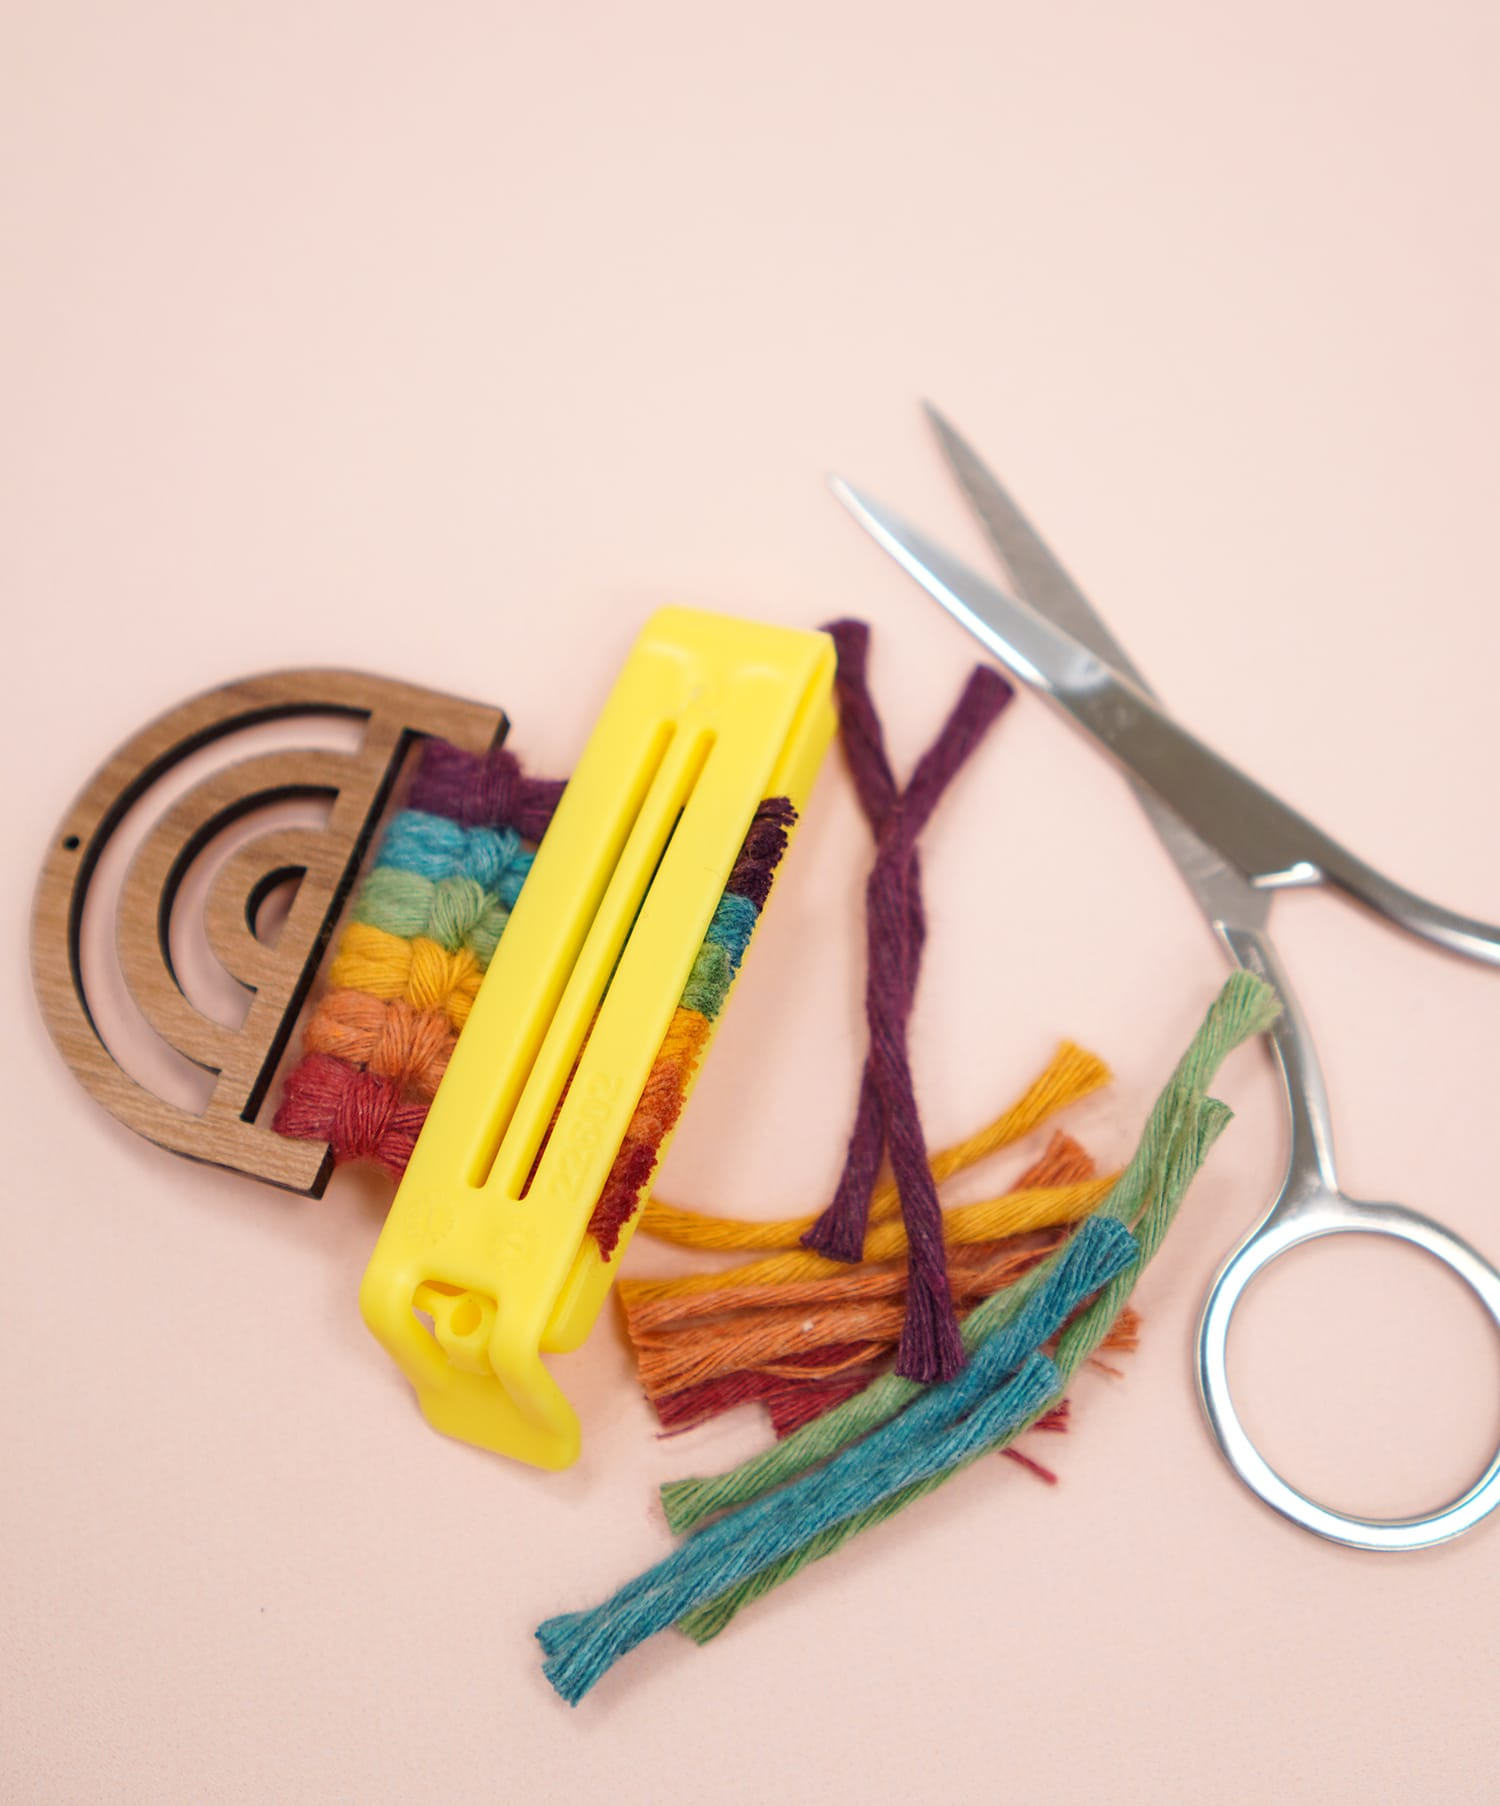 Trimmed Rainbow Macrame Earrings on peach background with scissors and bag clip